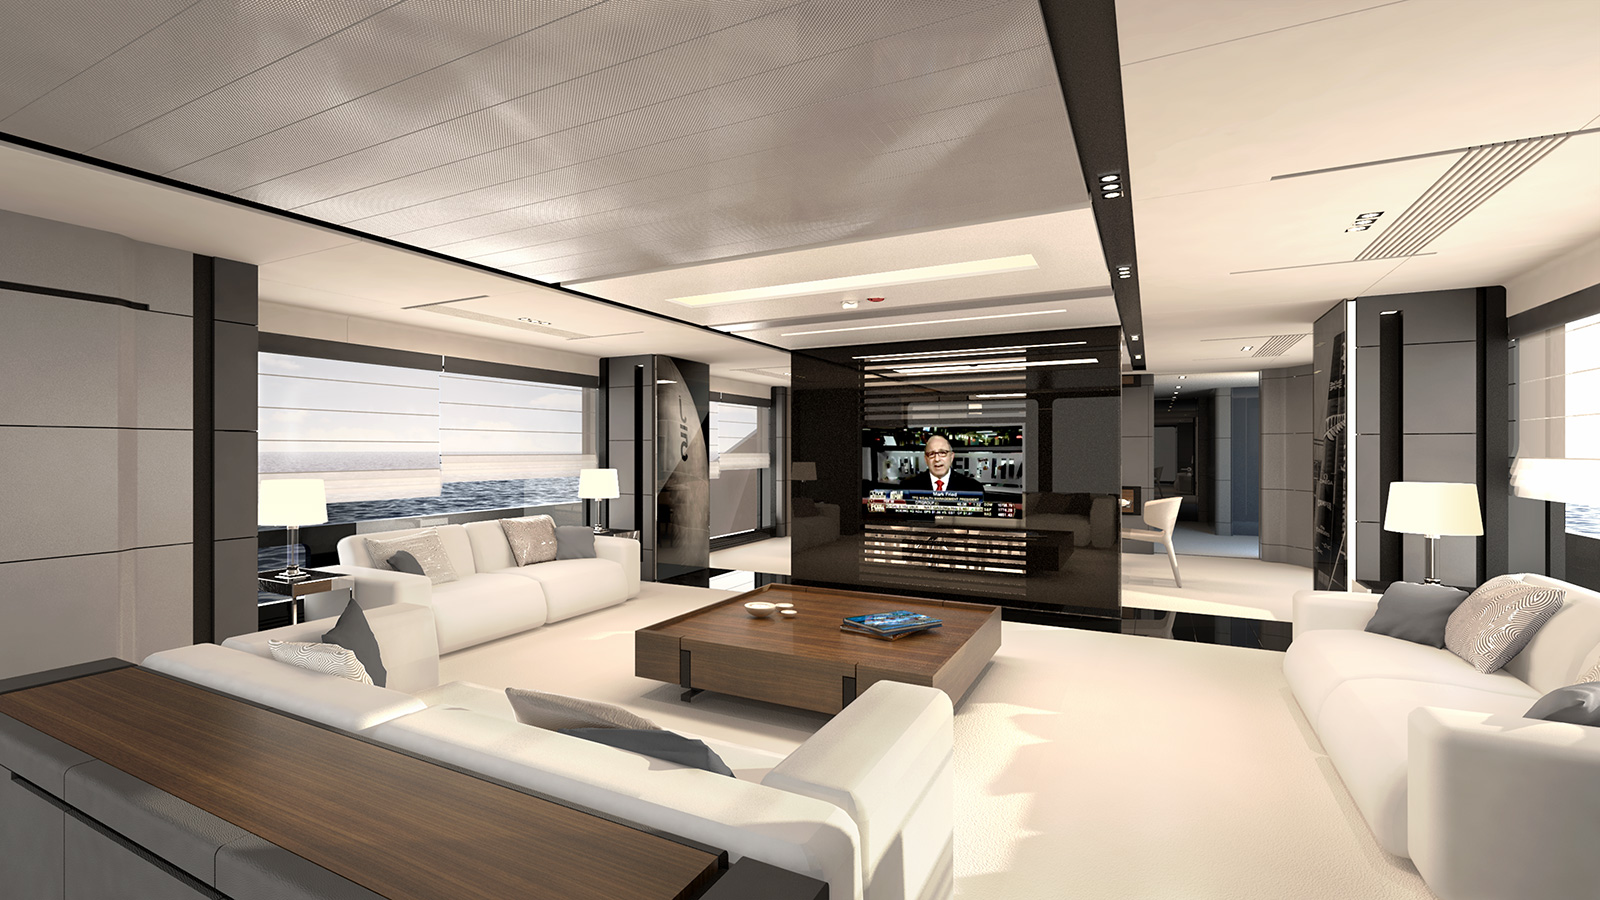 the-saloon-of-the-aeon-380-yacht-concept-by-scaro-design